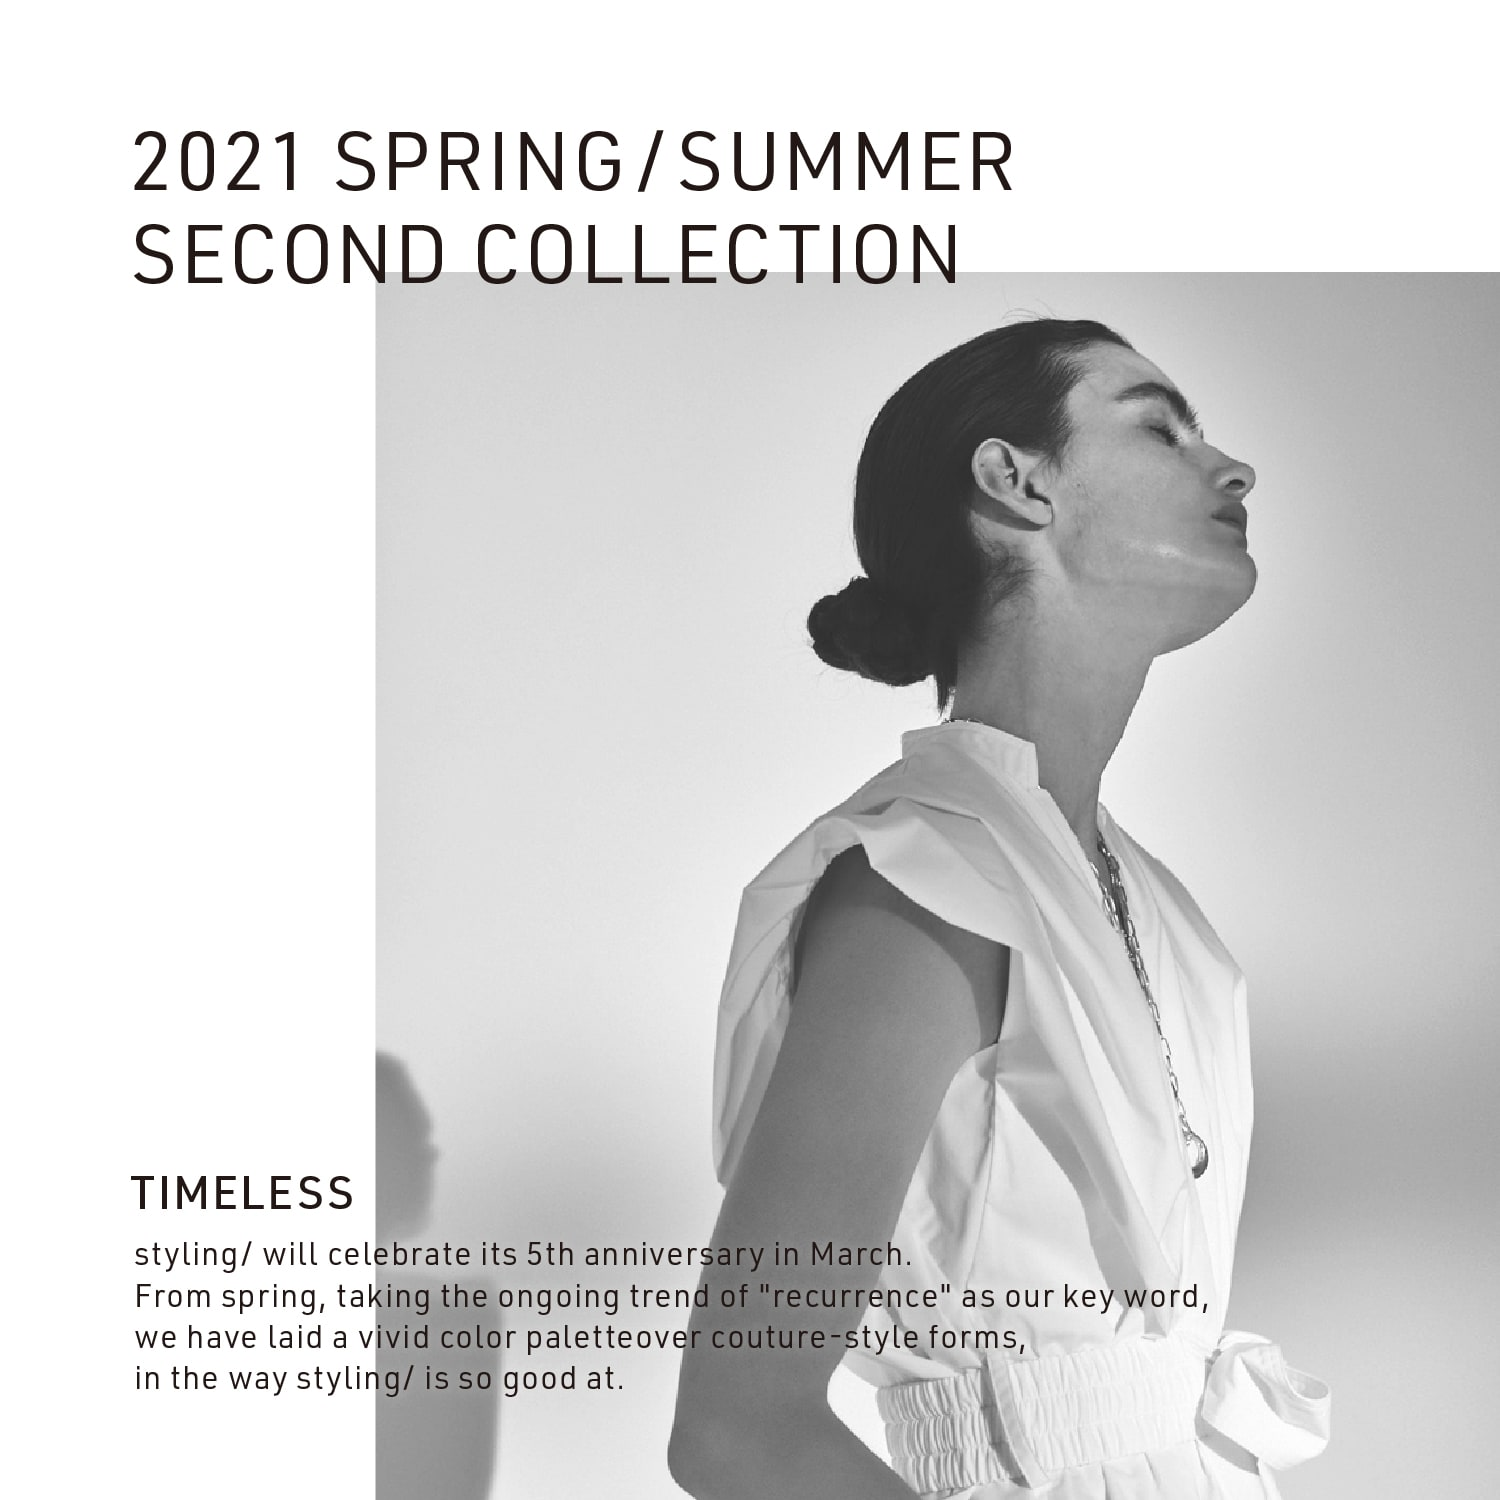 2021 SPRING/SUMMER SECOND COLLECTION: TIMELESS